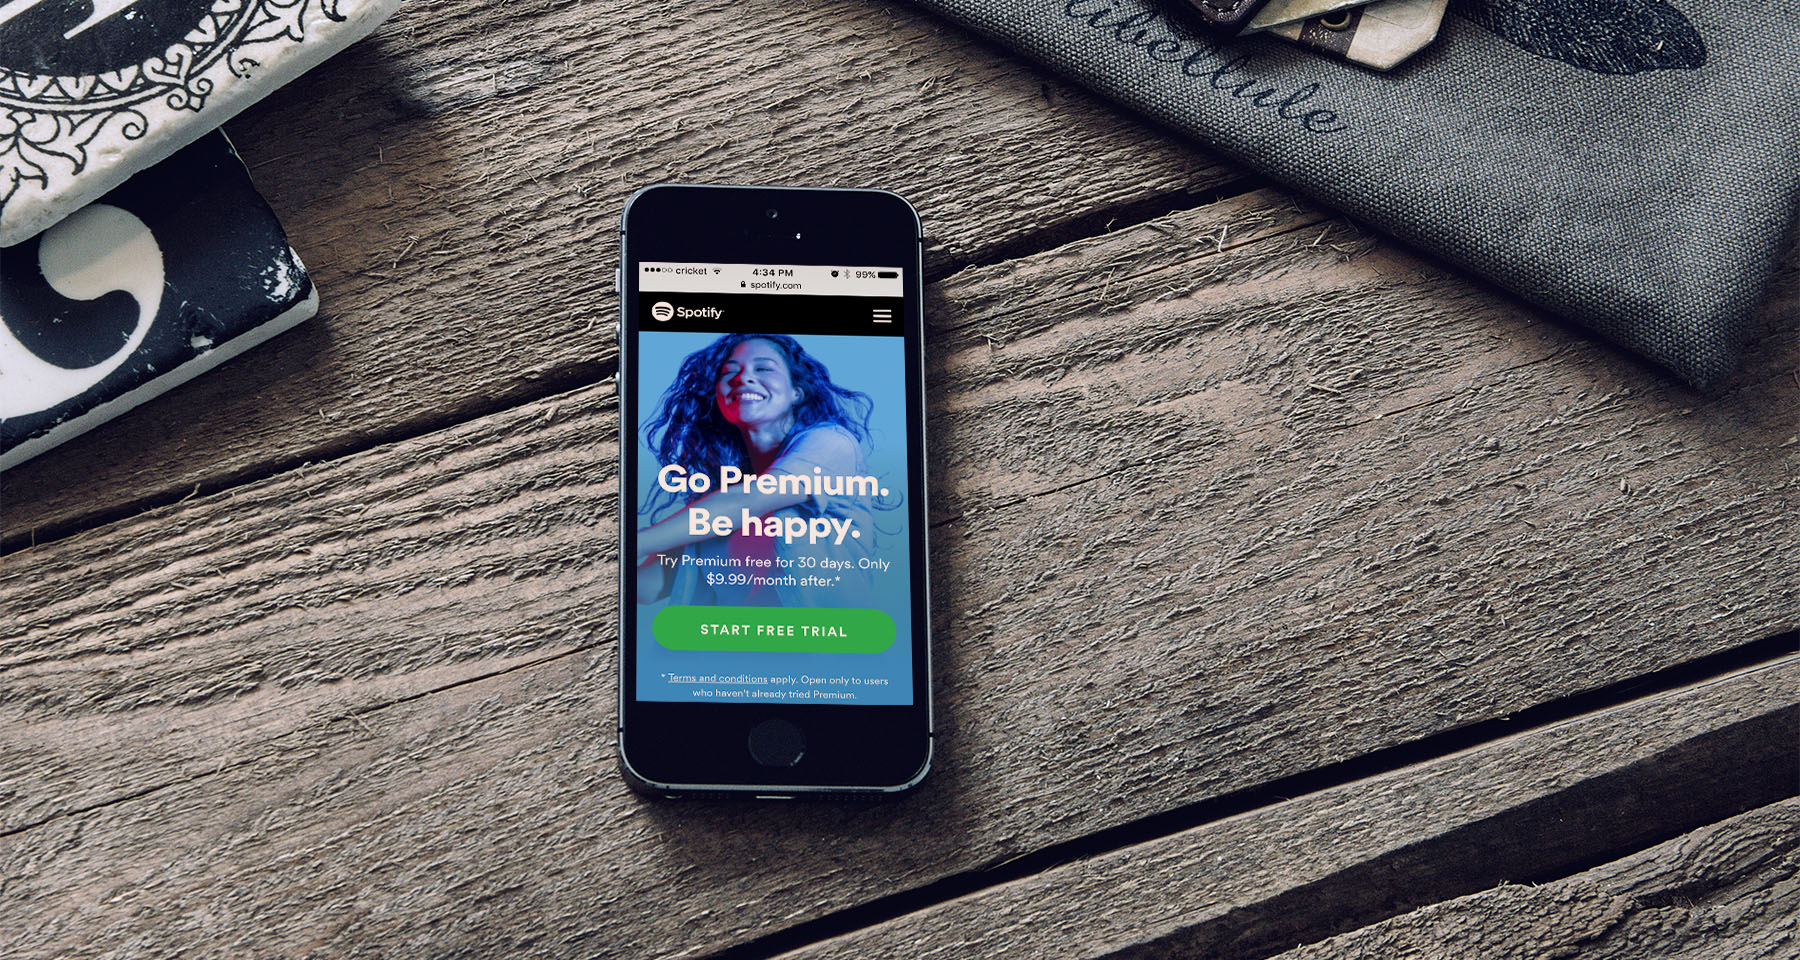 Spotify forces media companies to question mobile payment possibilities